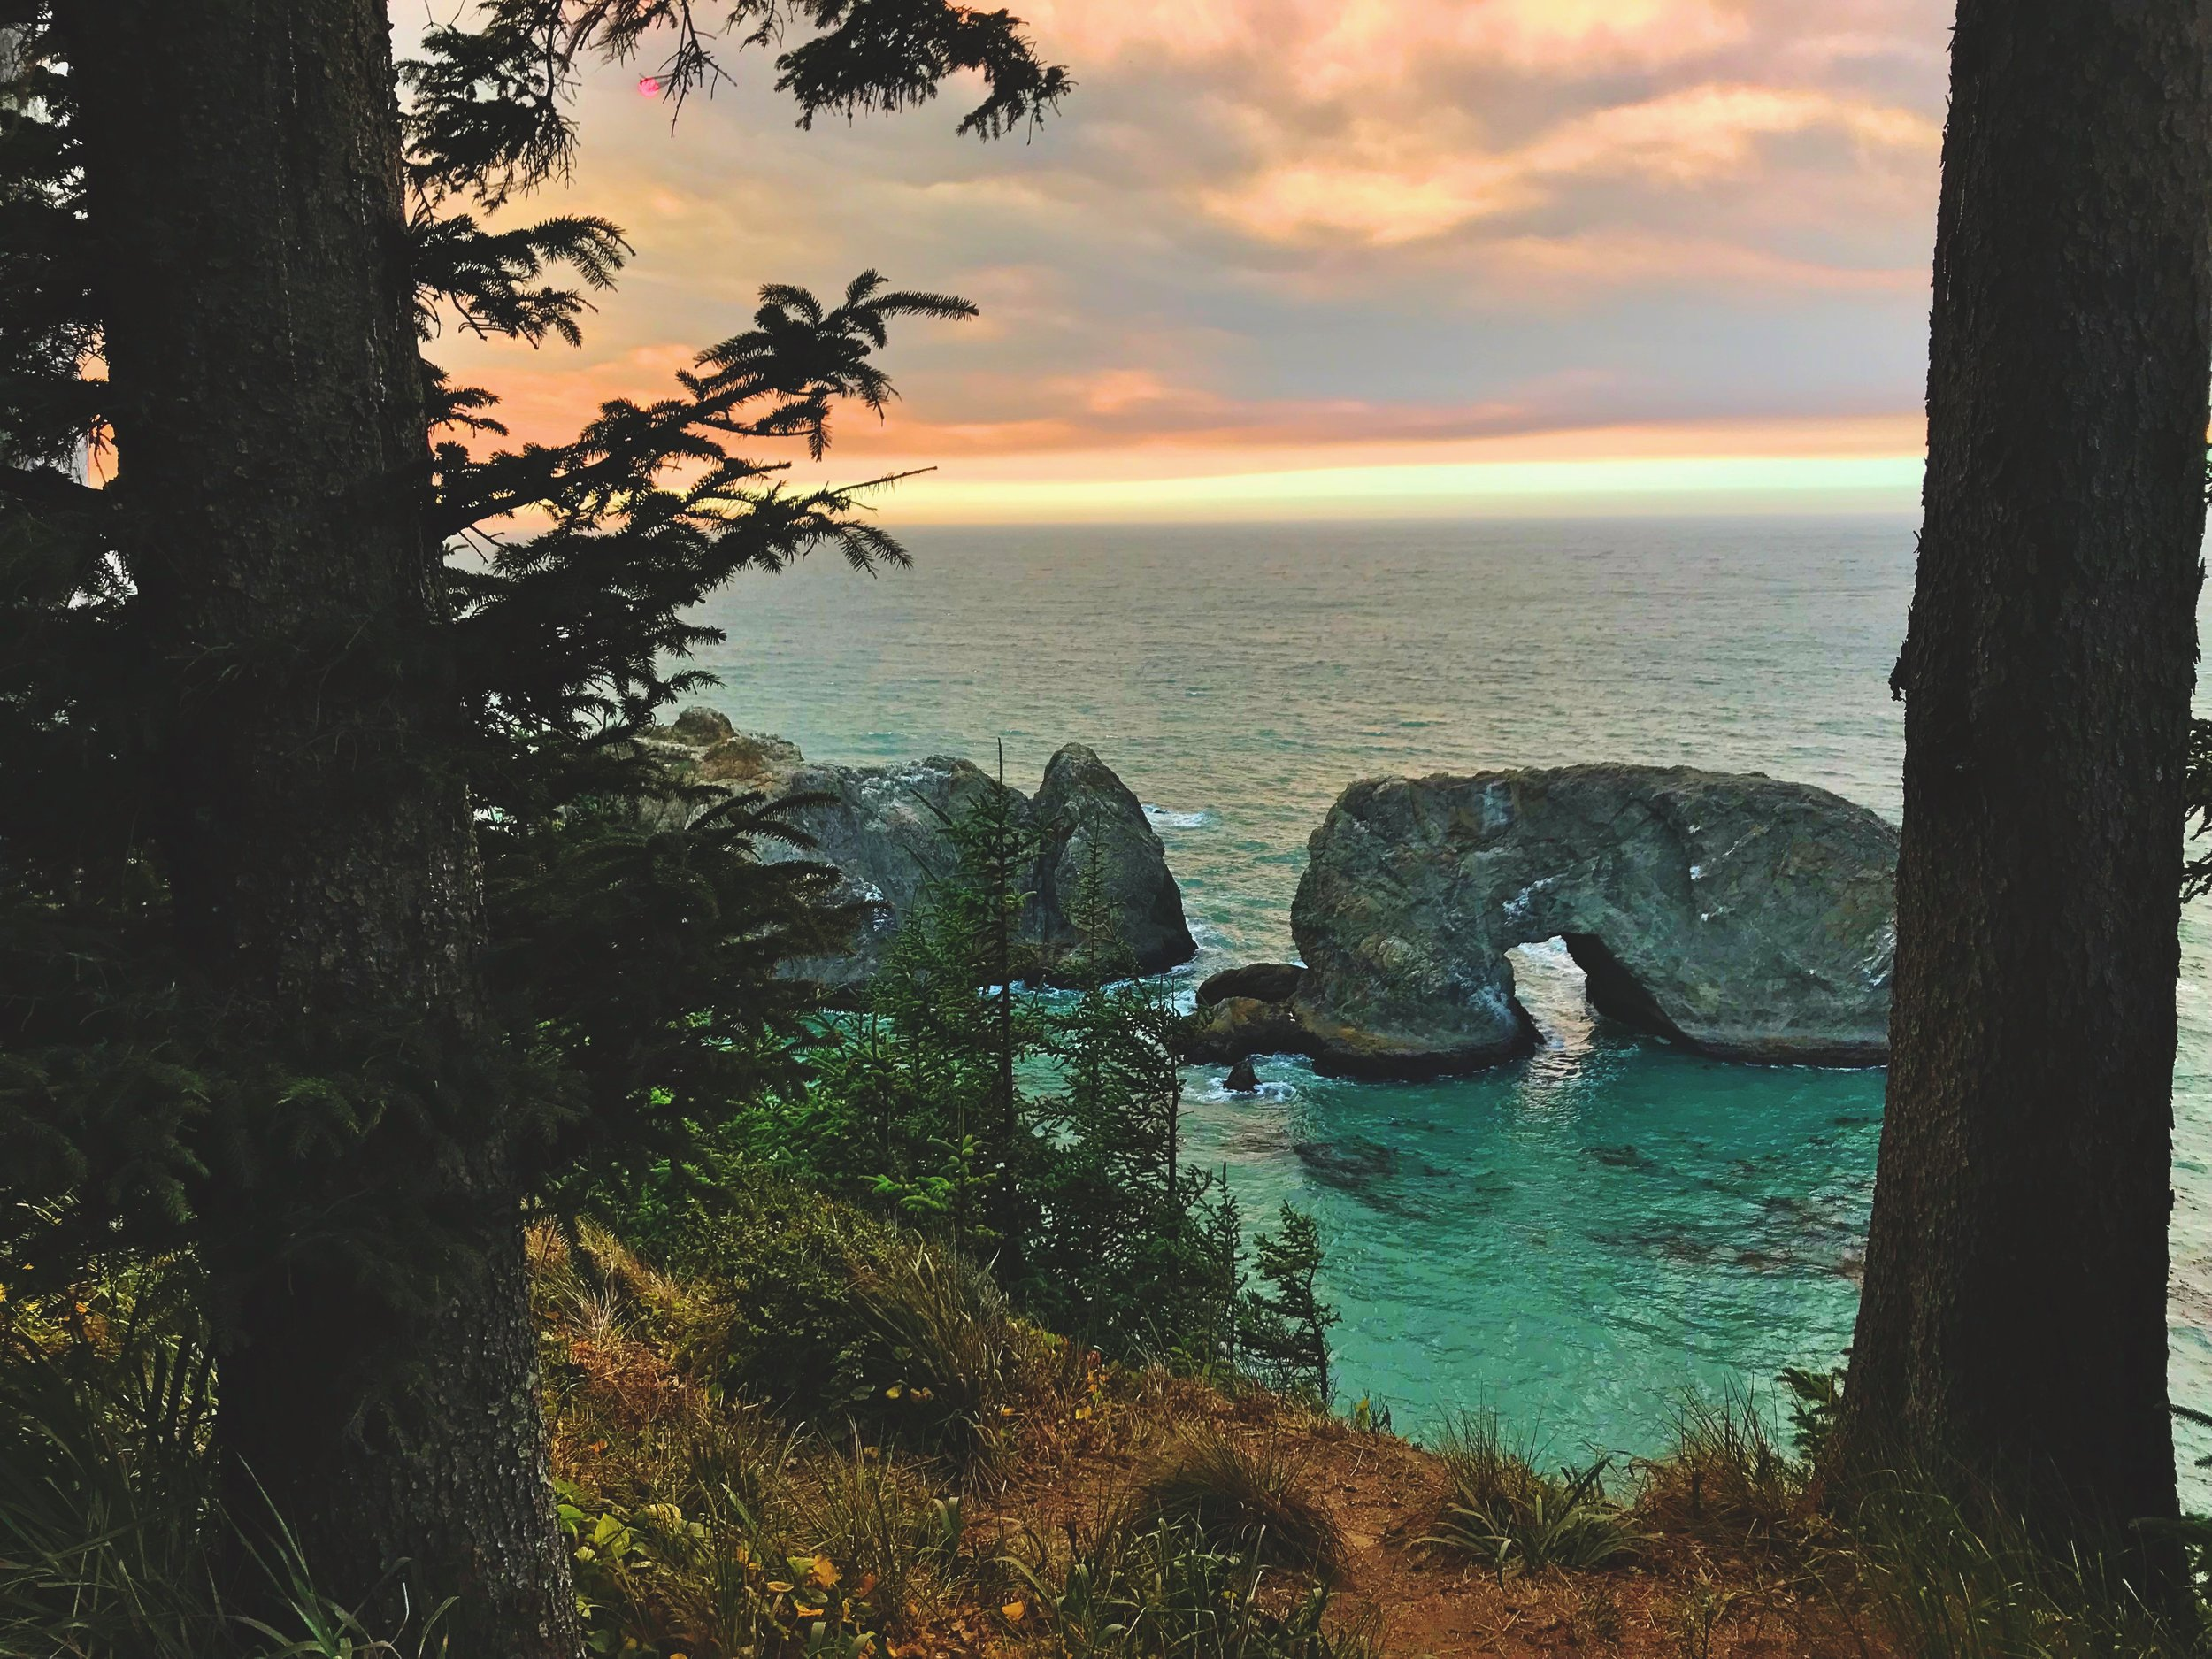 Arch Rock surrounded by the green waters and kelp beds of the southern Oregon coast.